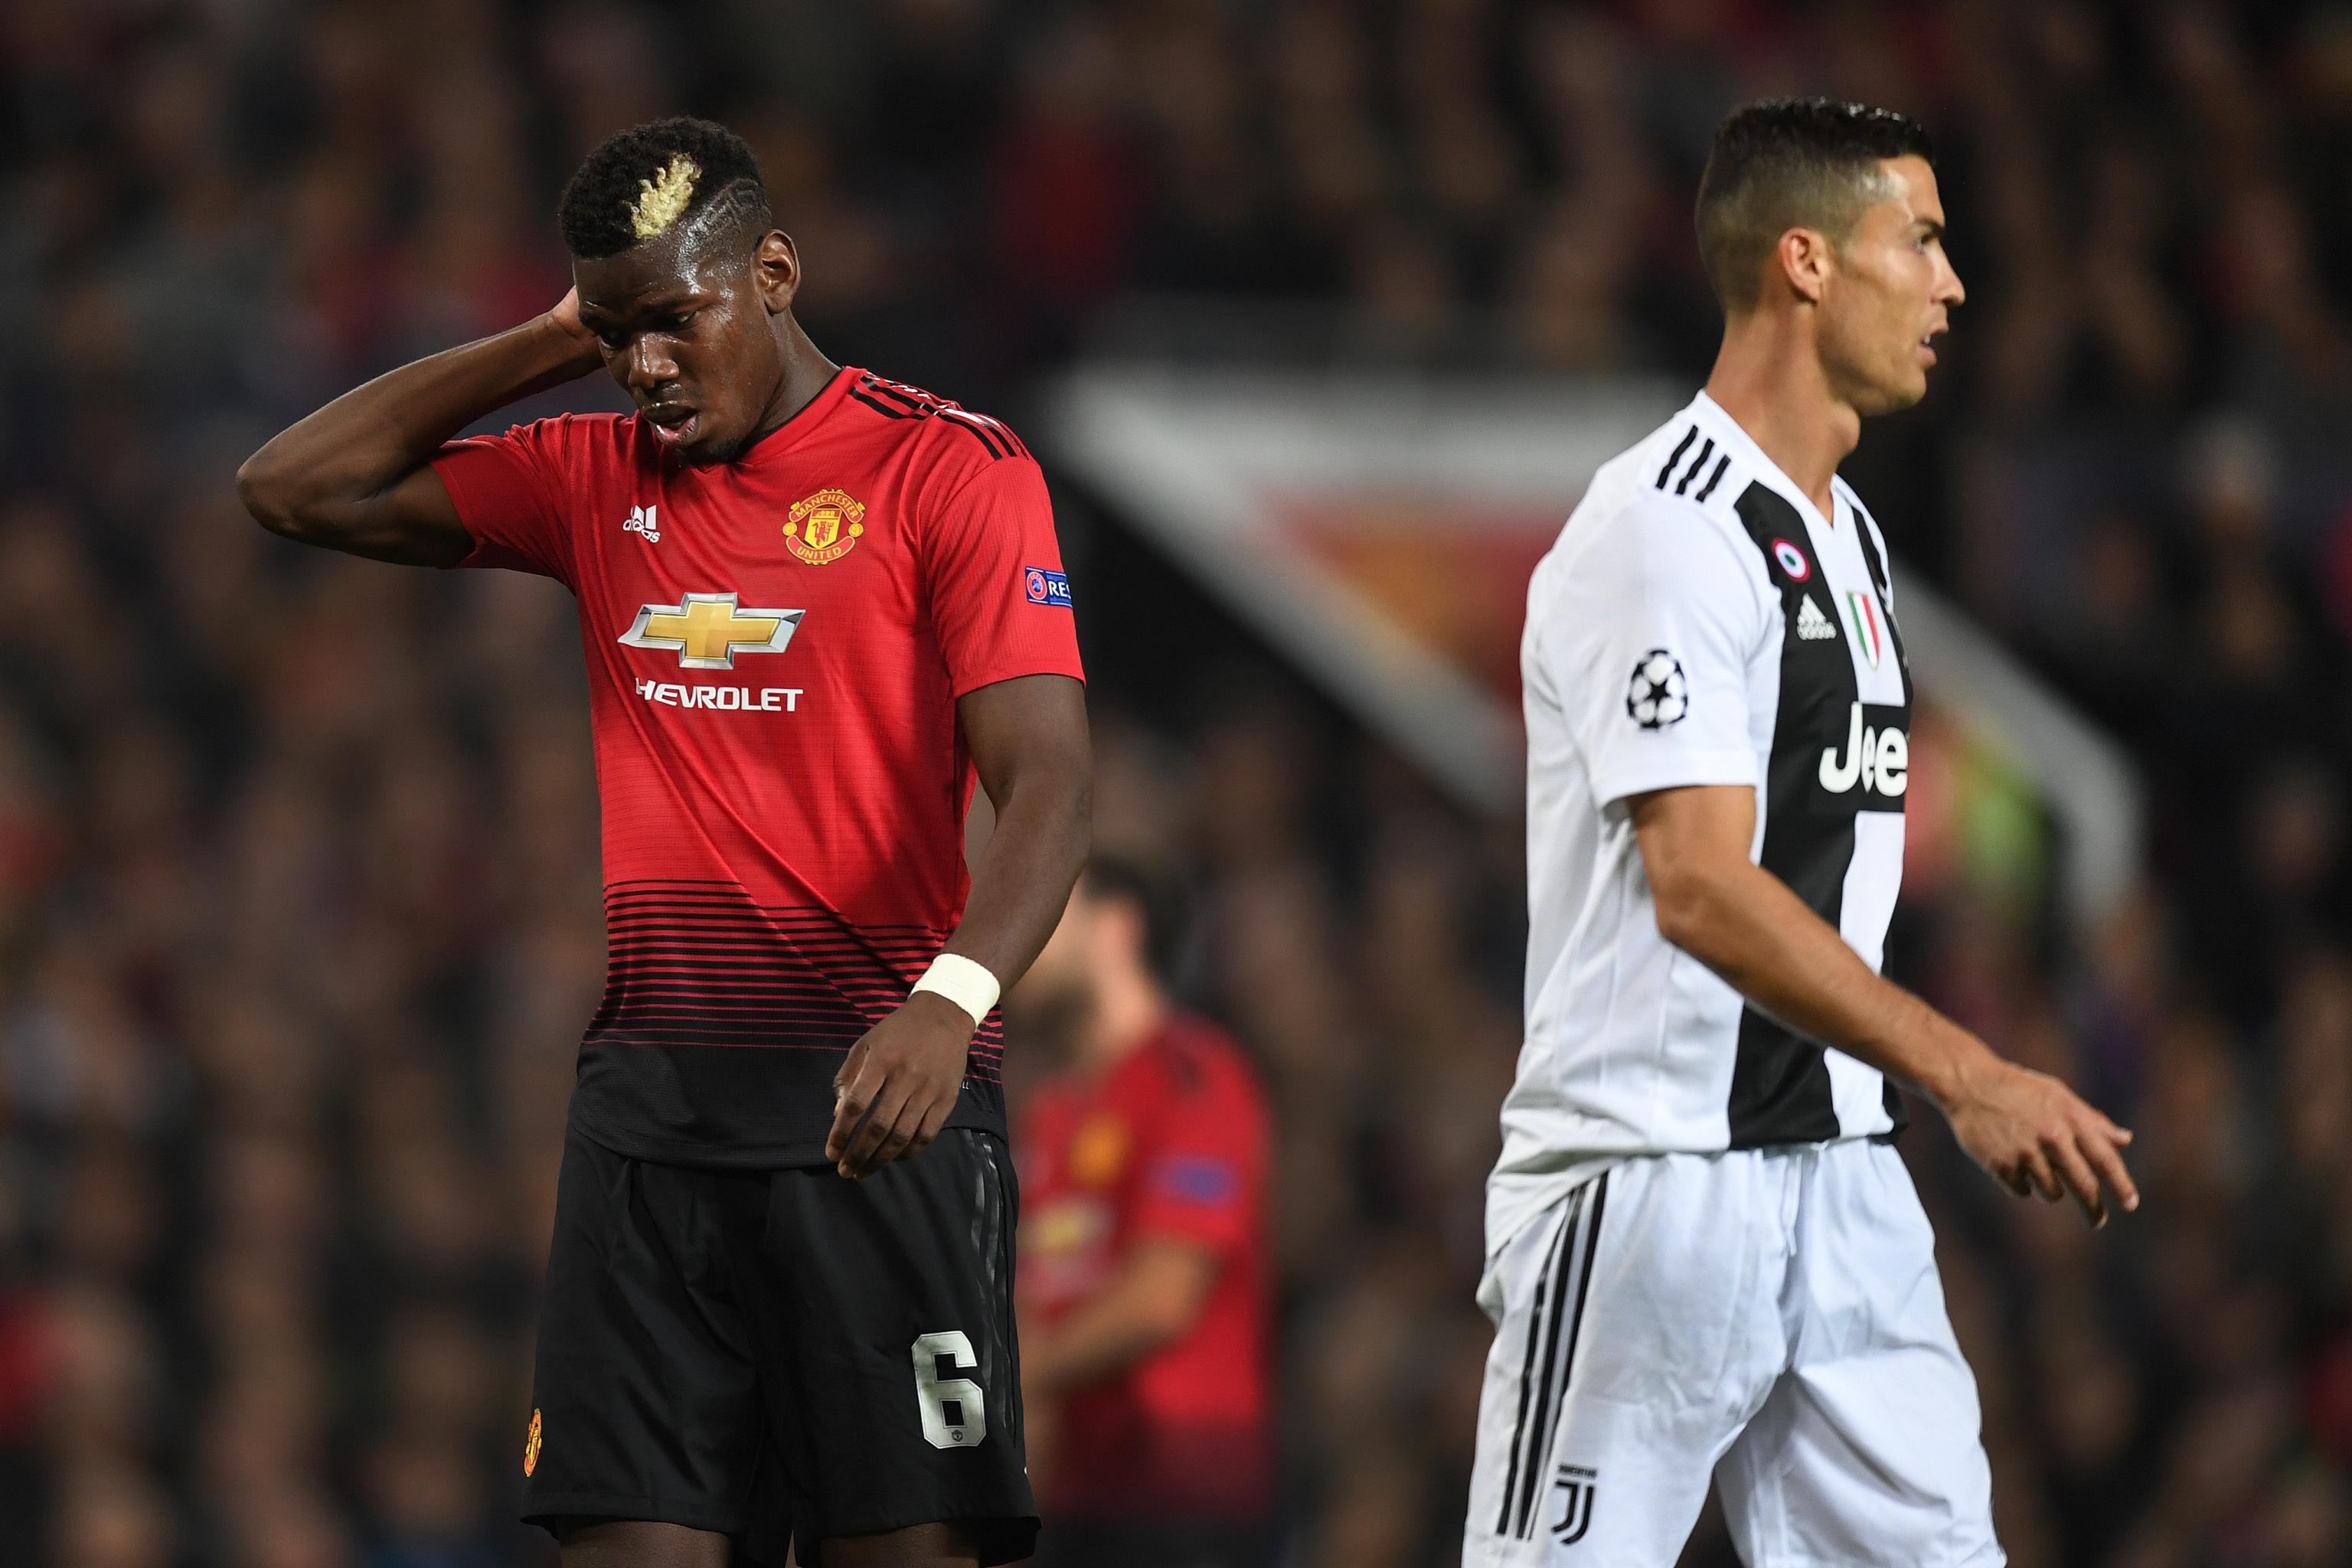 Cristiano Ronaldo Scores Goals Like He 'Drinks Water,' Says Paul Pogba |  Bleacher Report | Latest News, Videos and Highlights